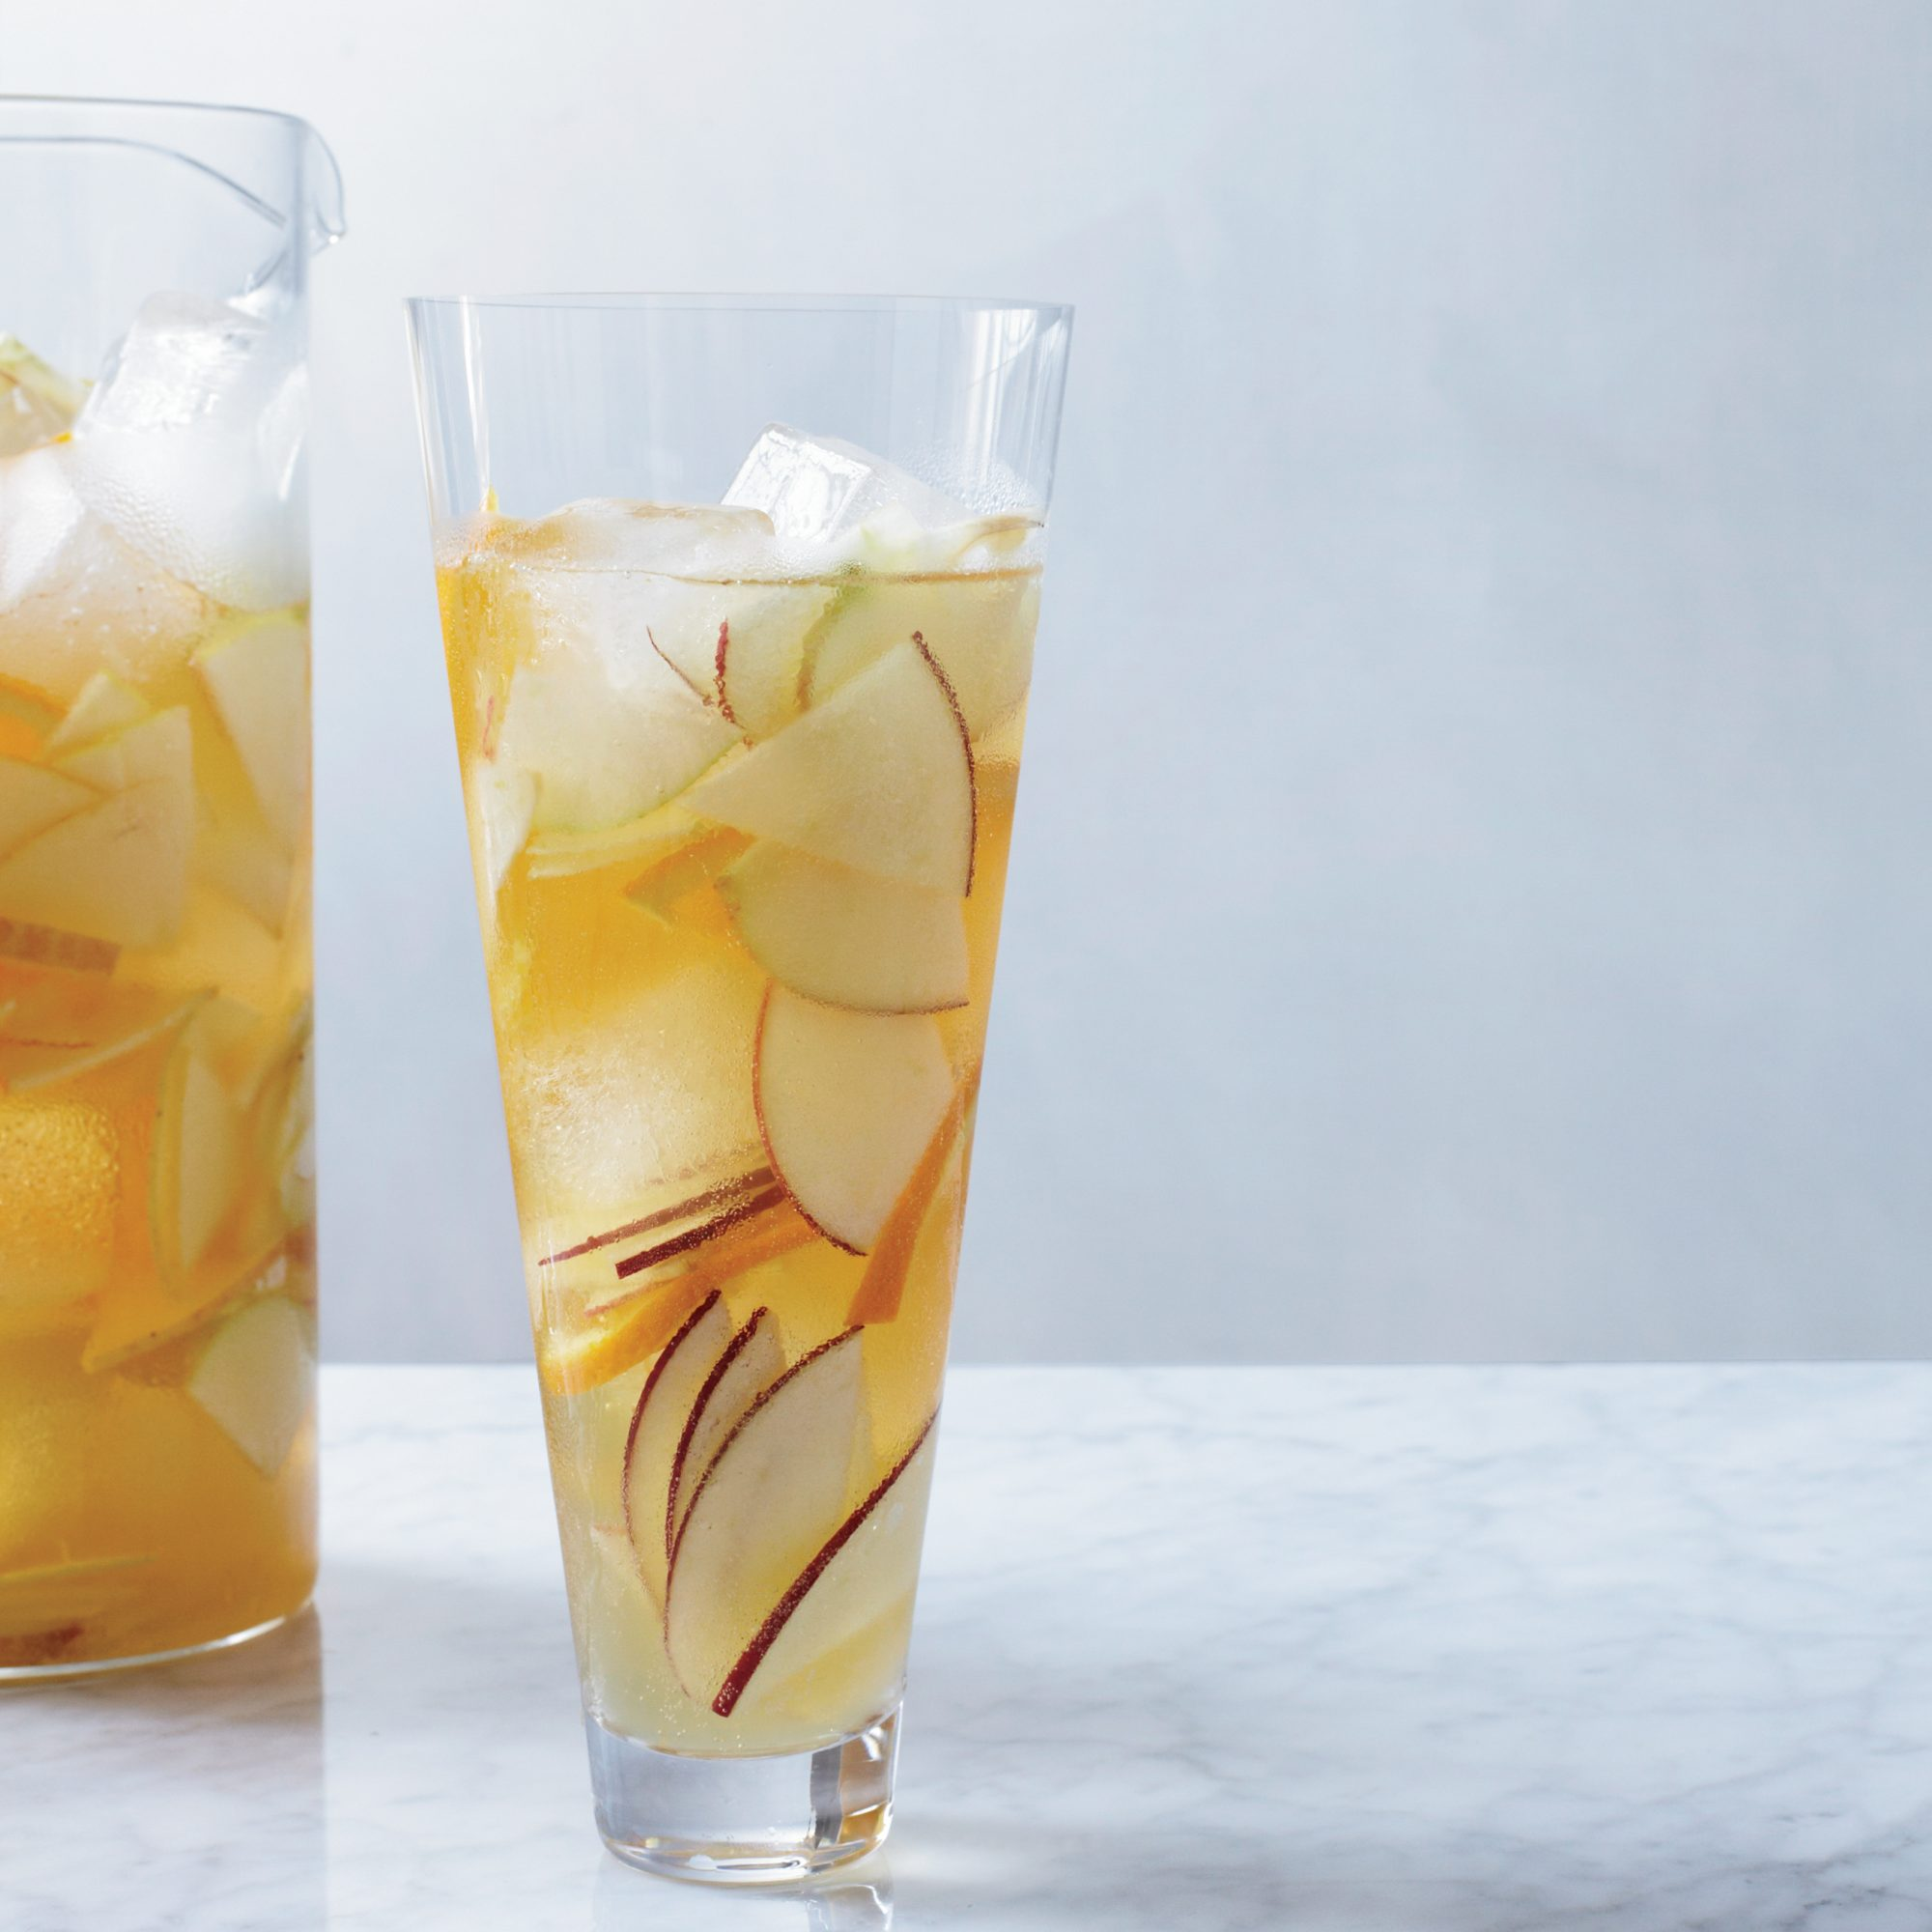 5 Spritzy Hard Cider Cocktails